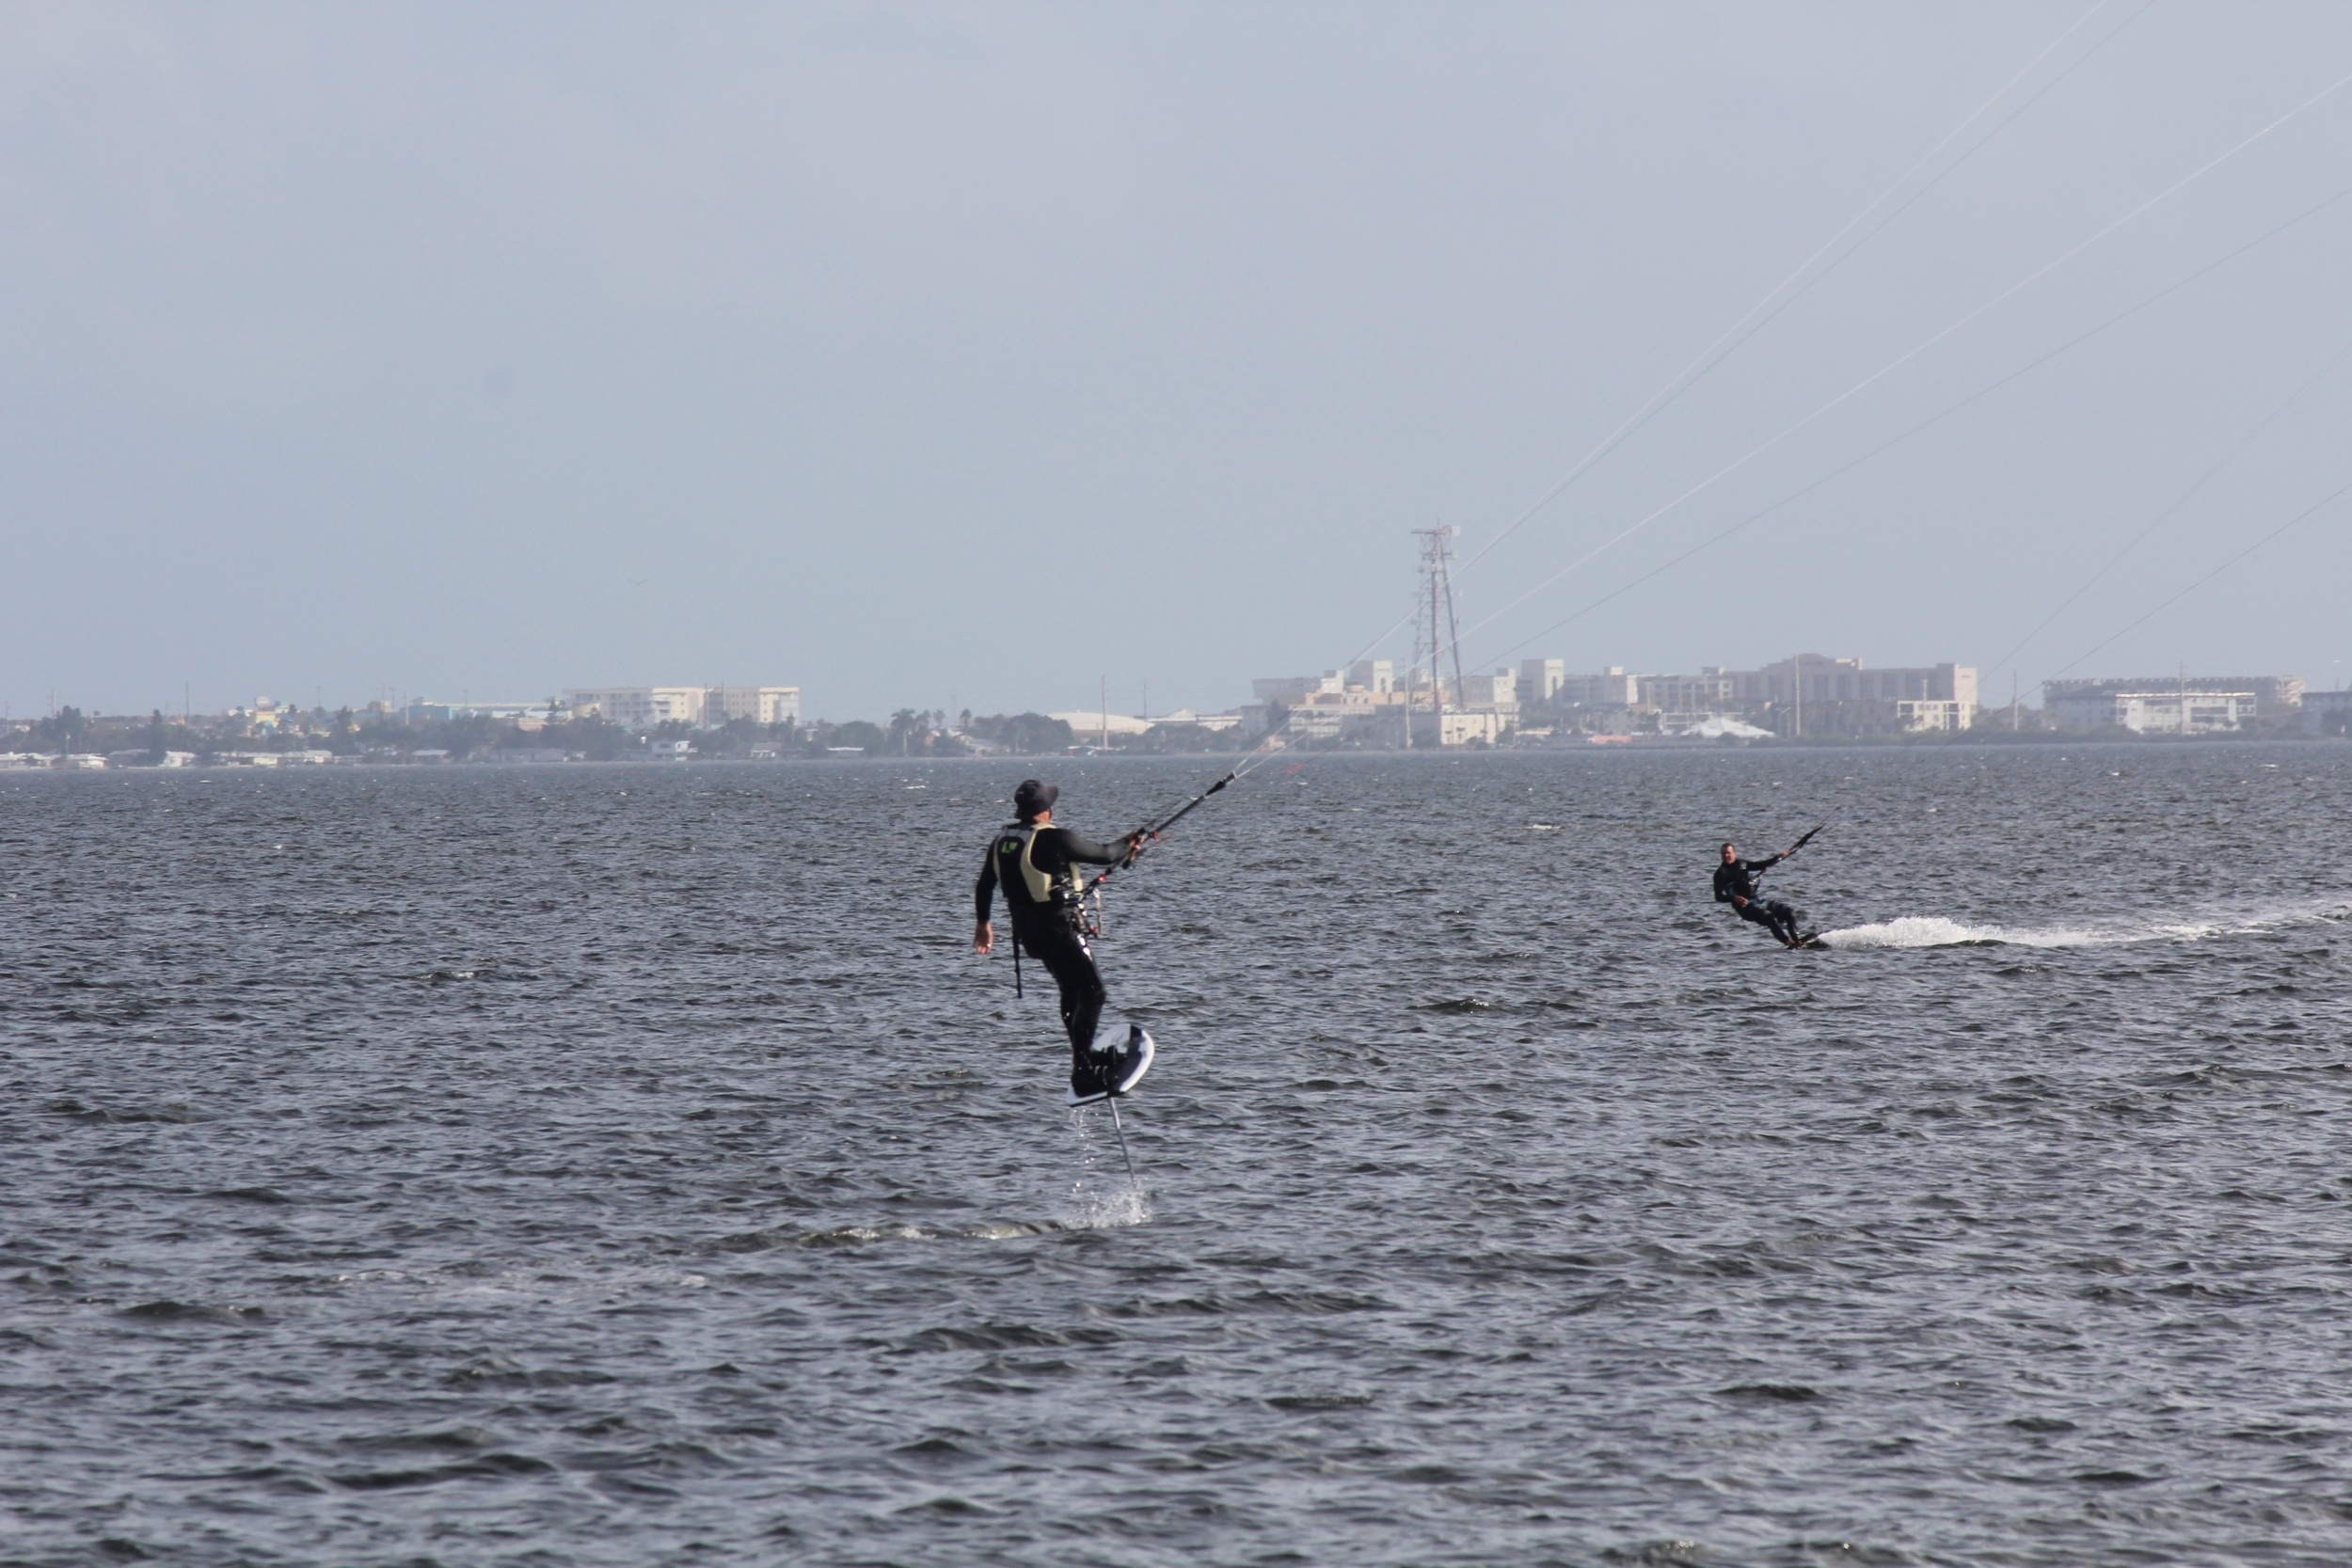 Dave on his foil board with 13m Cabrinha.Mark on his 15m Flysurfer.